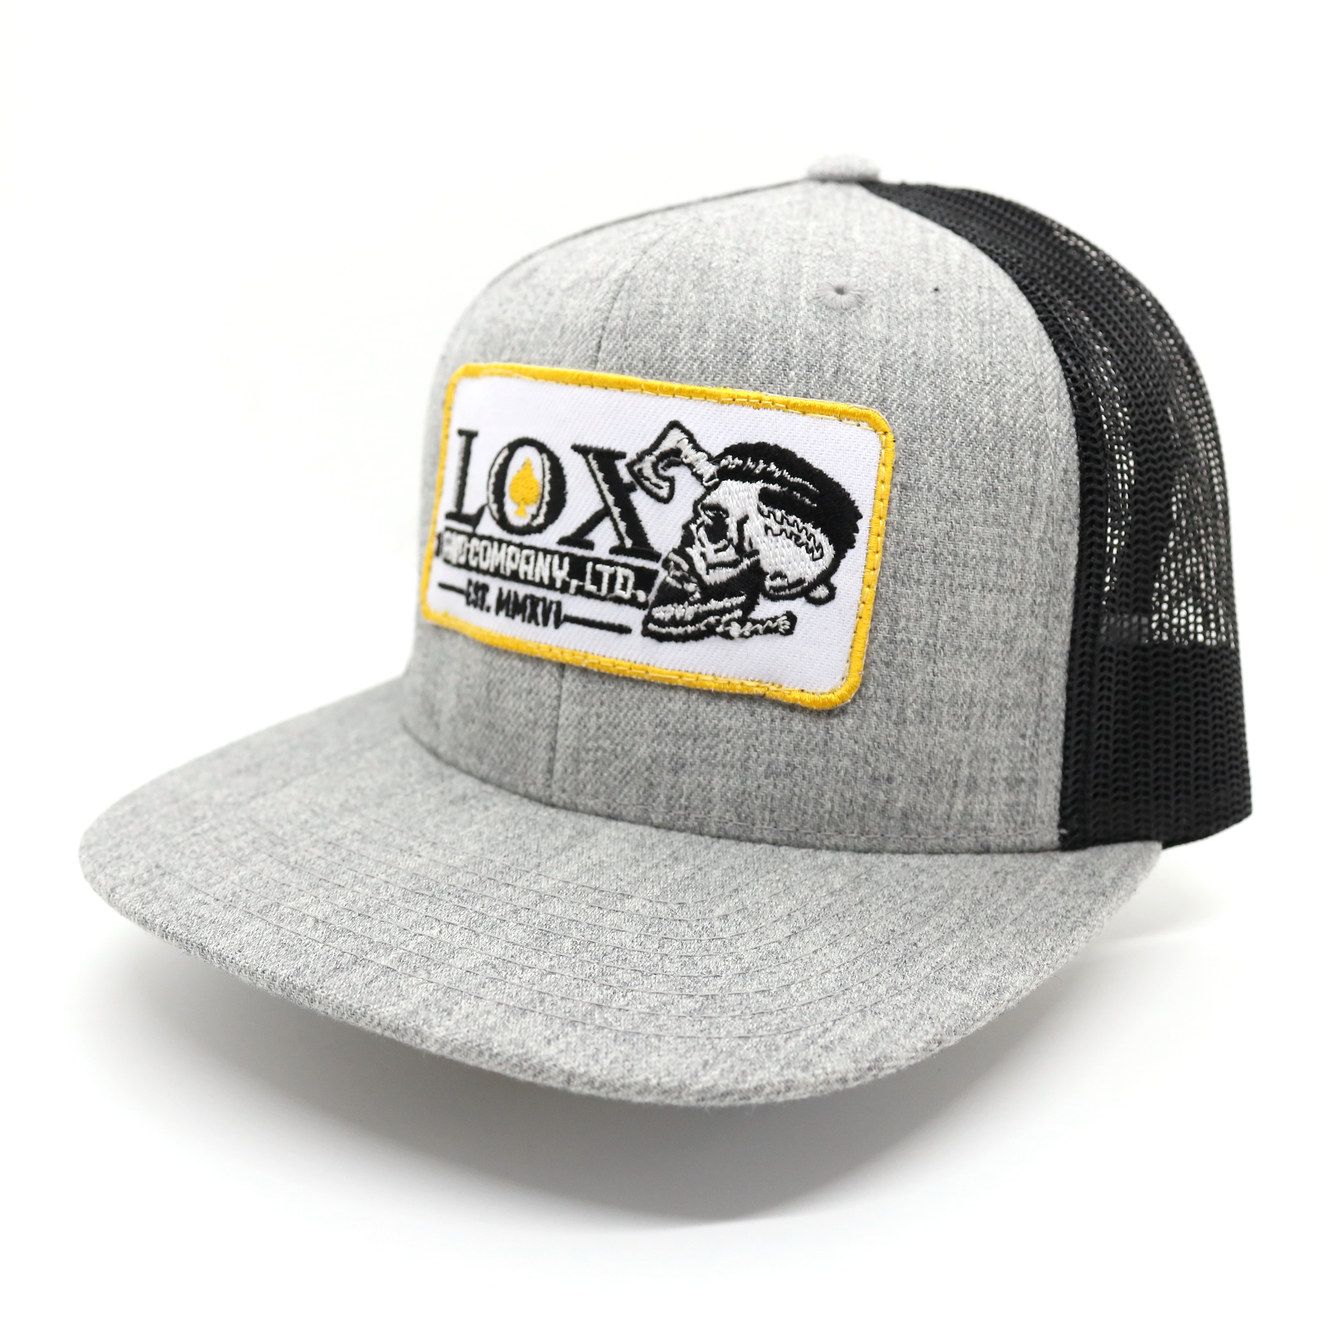 Lox and Company Black and Grey Trucker Hat